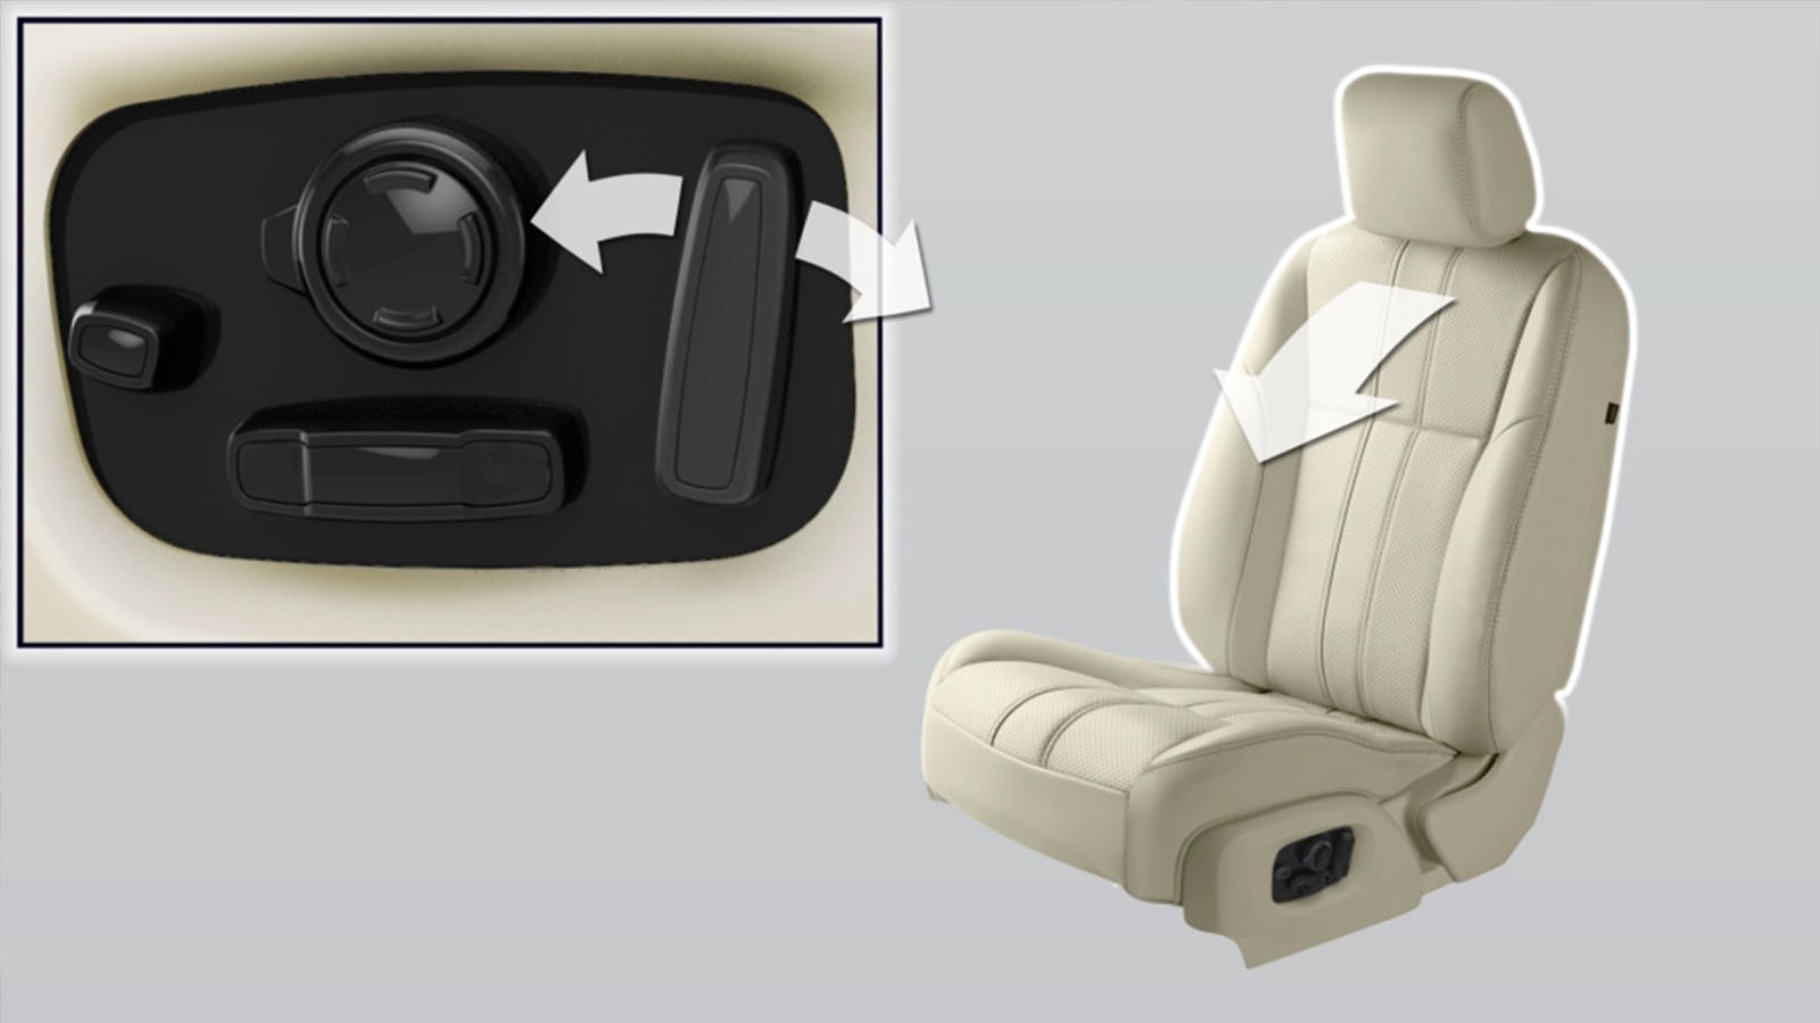 A Jaguar XJ car seat, with the seat adjustment control buttons.